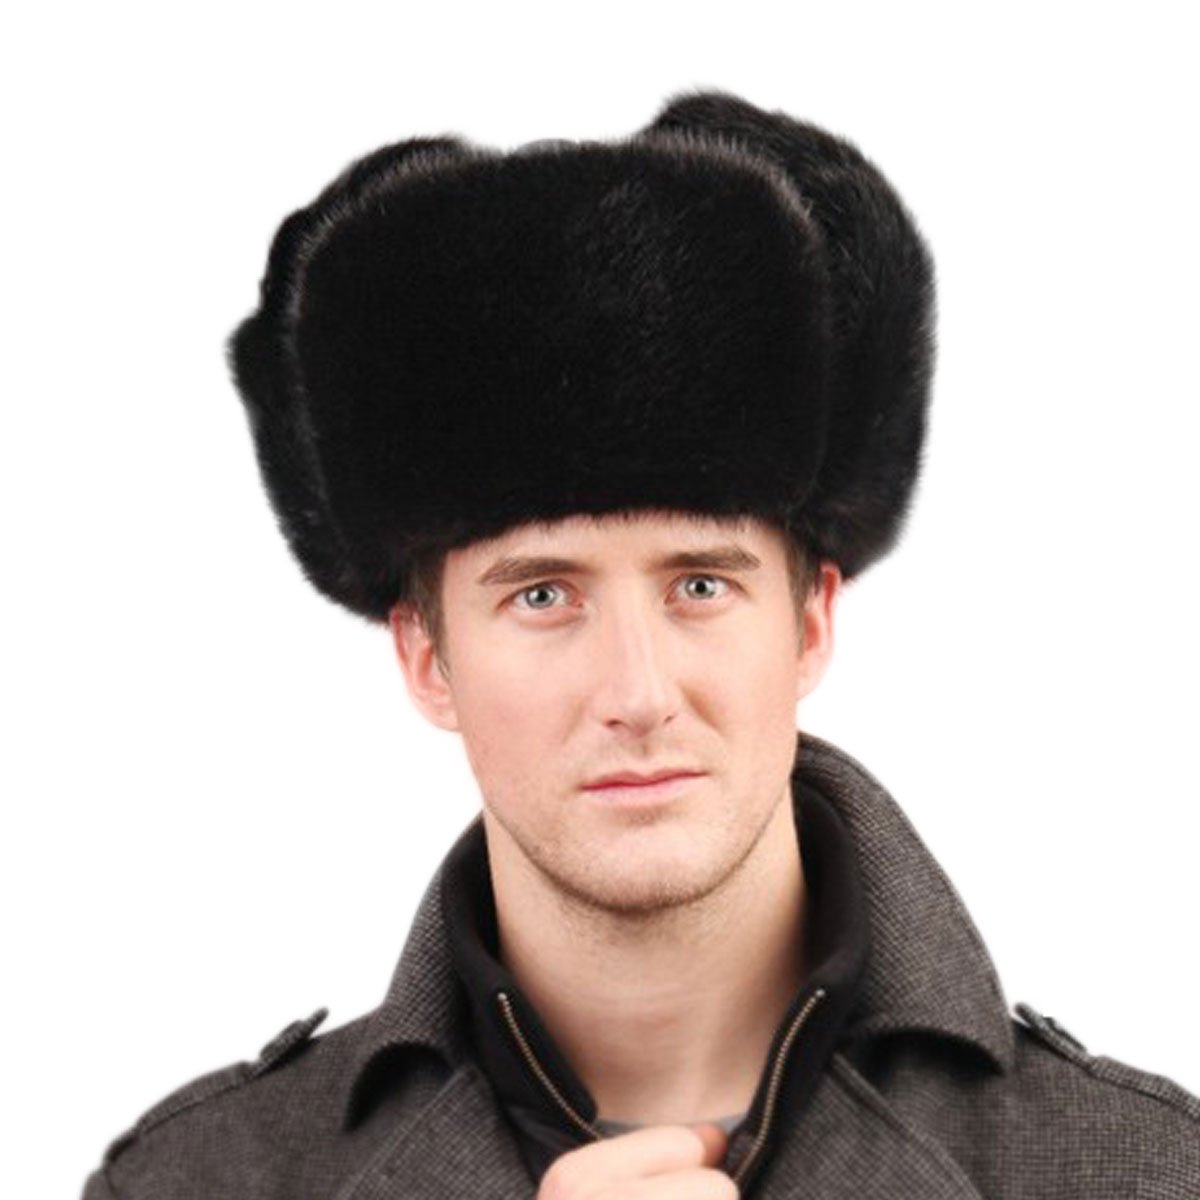 URSFUR Men's Mink Full Fur Russian Ushanka Hats Black by URSFUR